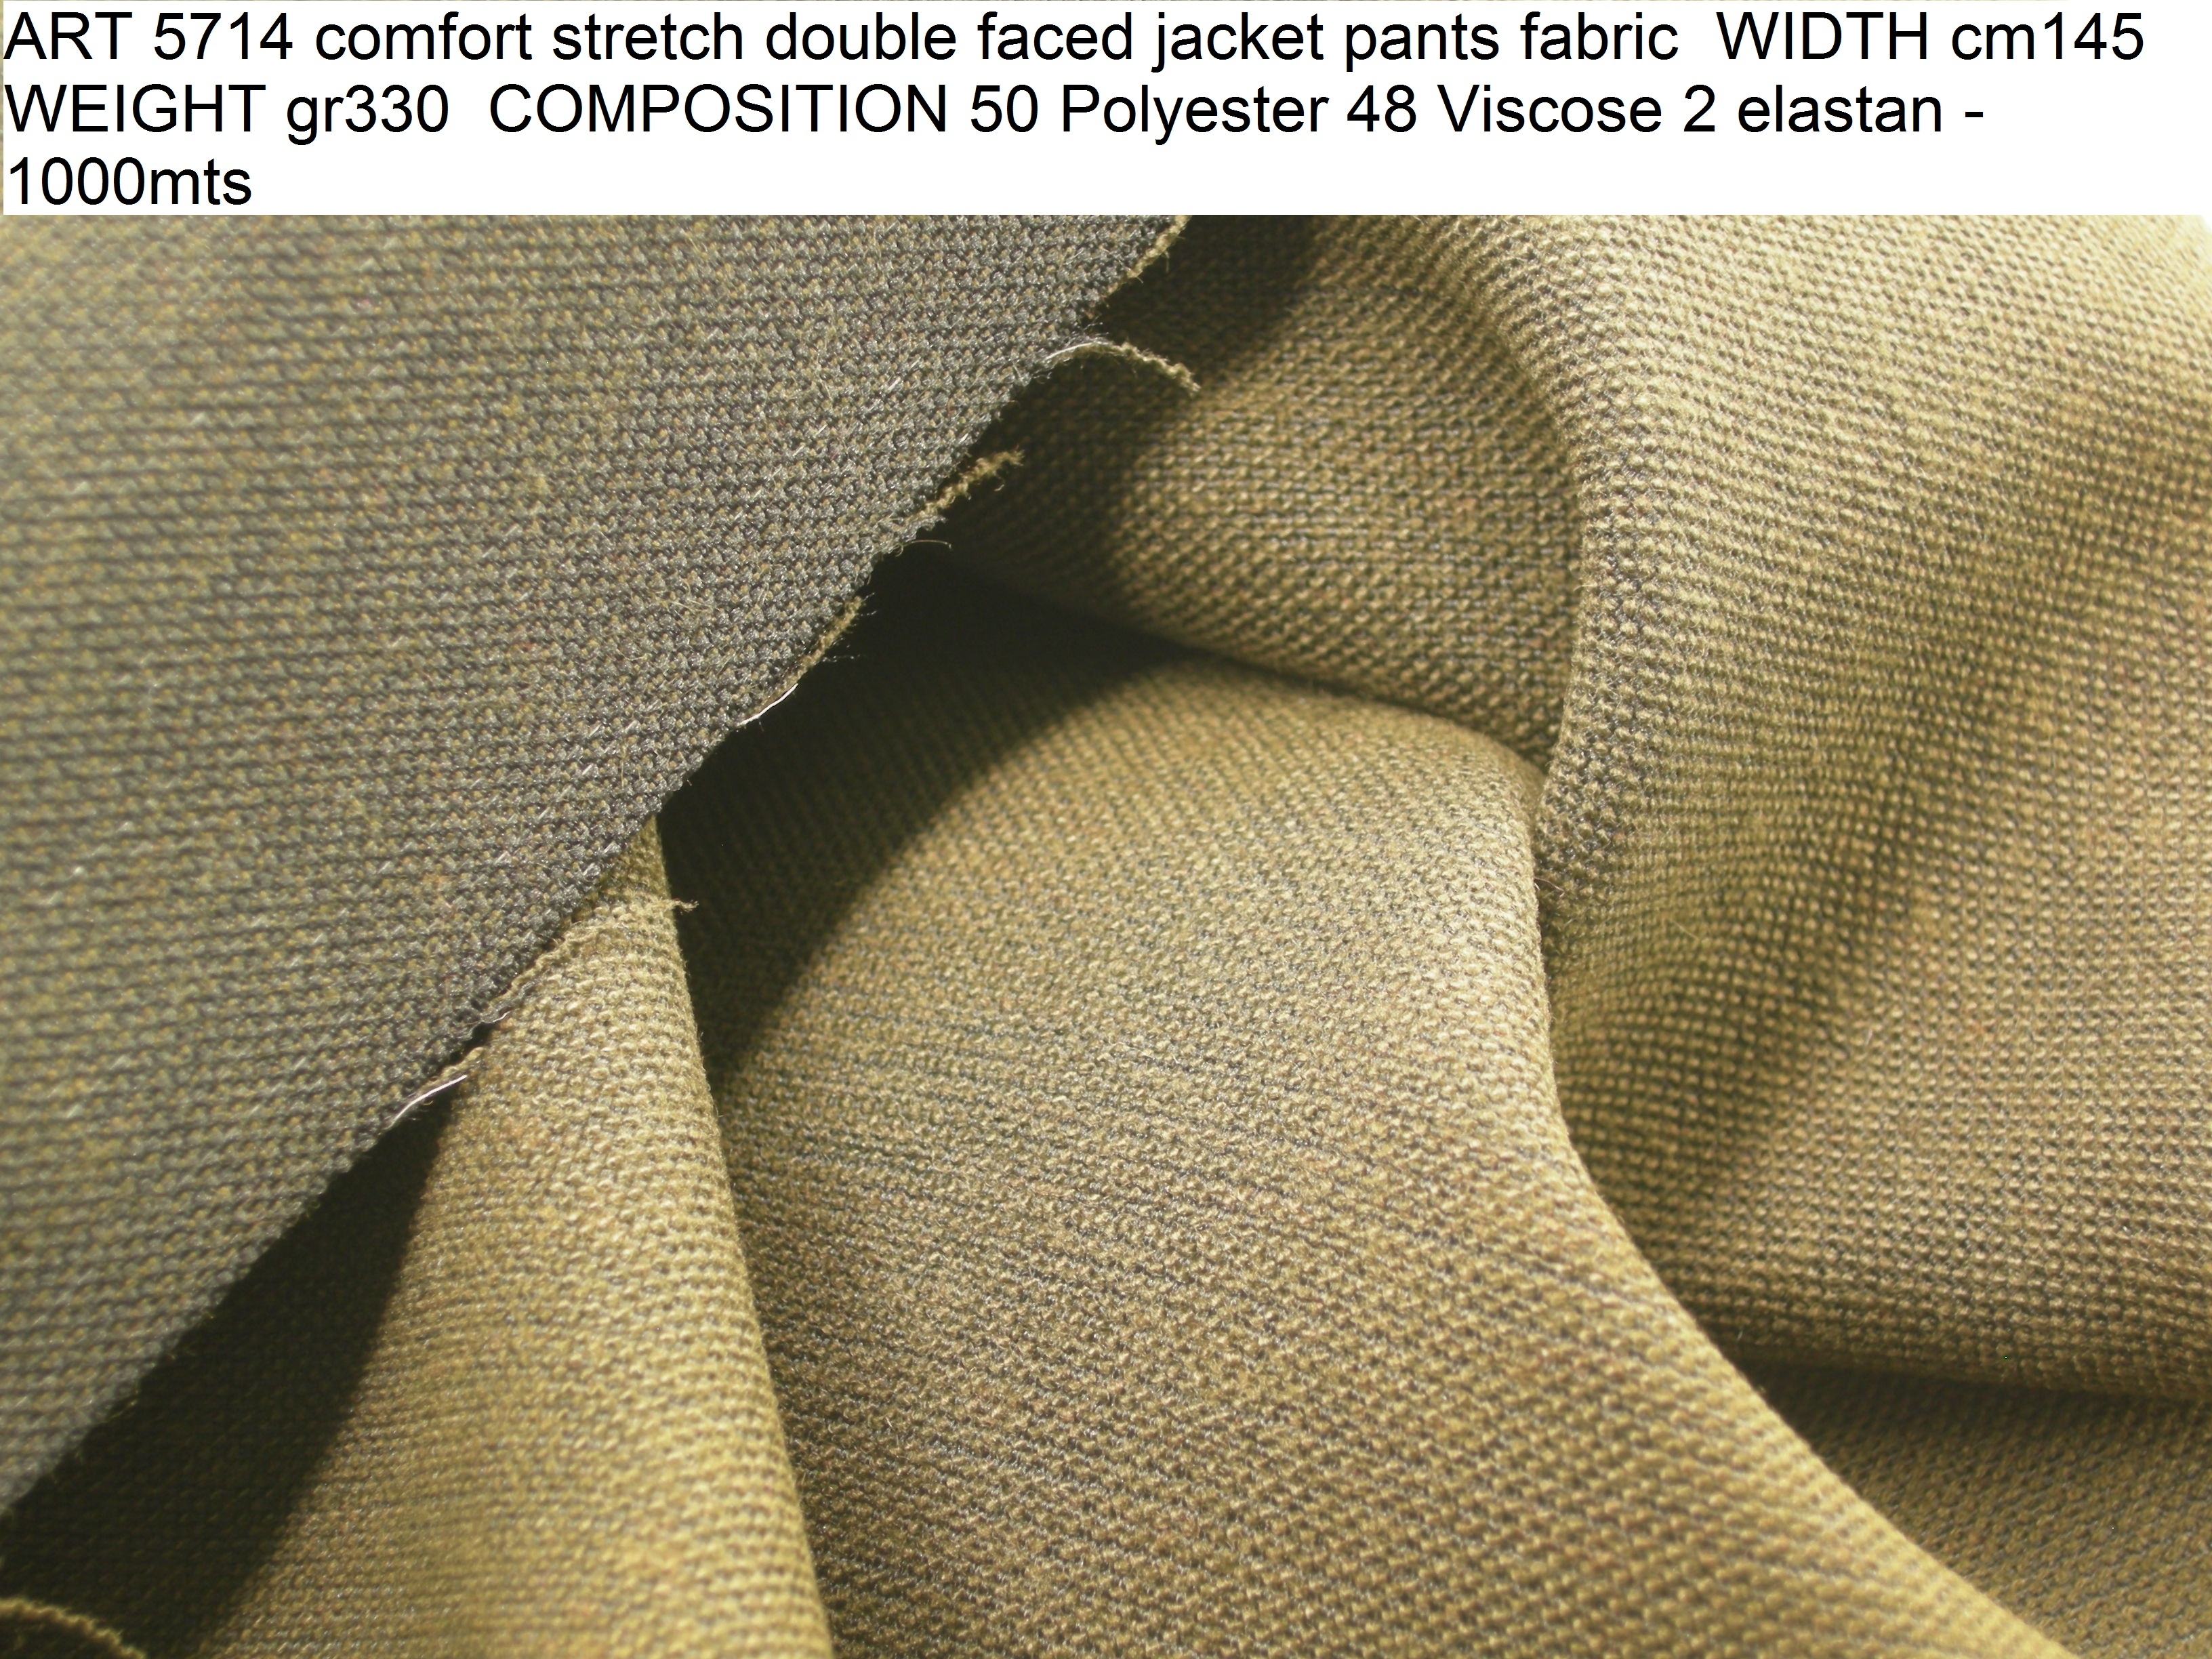 ART 5714 comfort stretch double faced jacket pants fabric WIDTH cm145 WEIGHT gr330 COMPOSITION 50 Polyester 48 Viscose 2 elastan - 1000mts